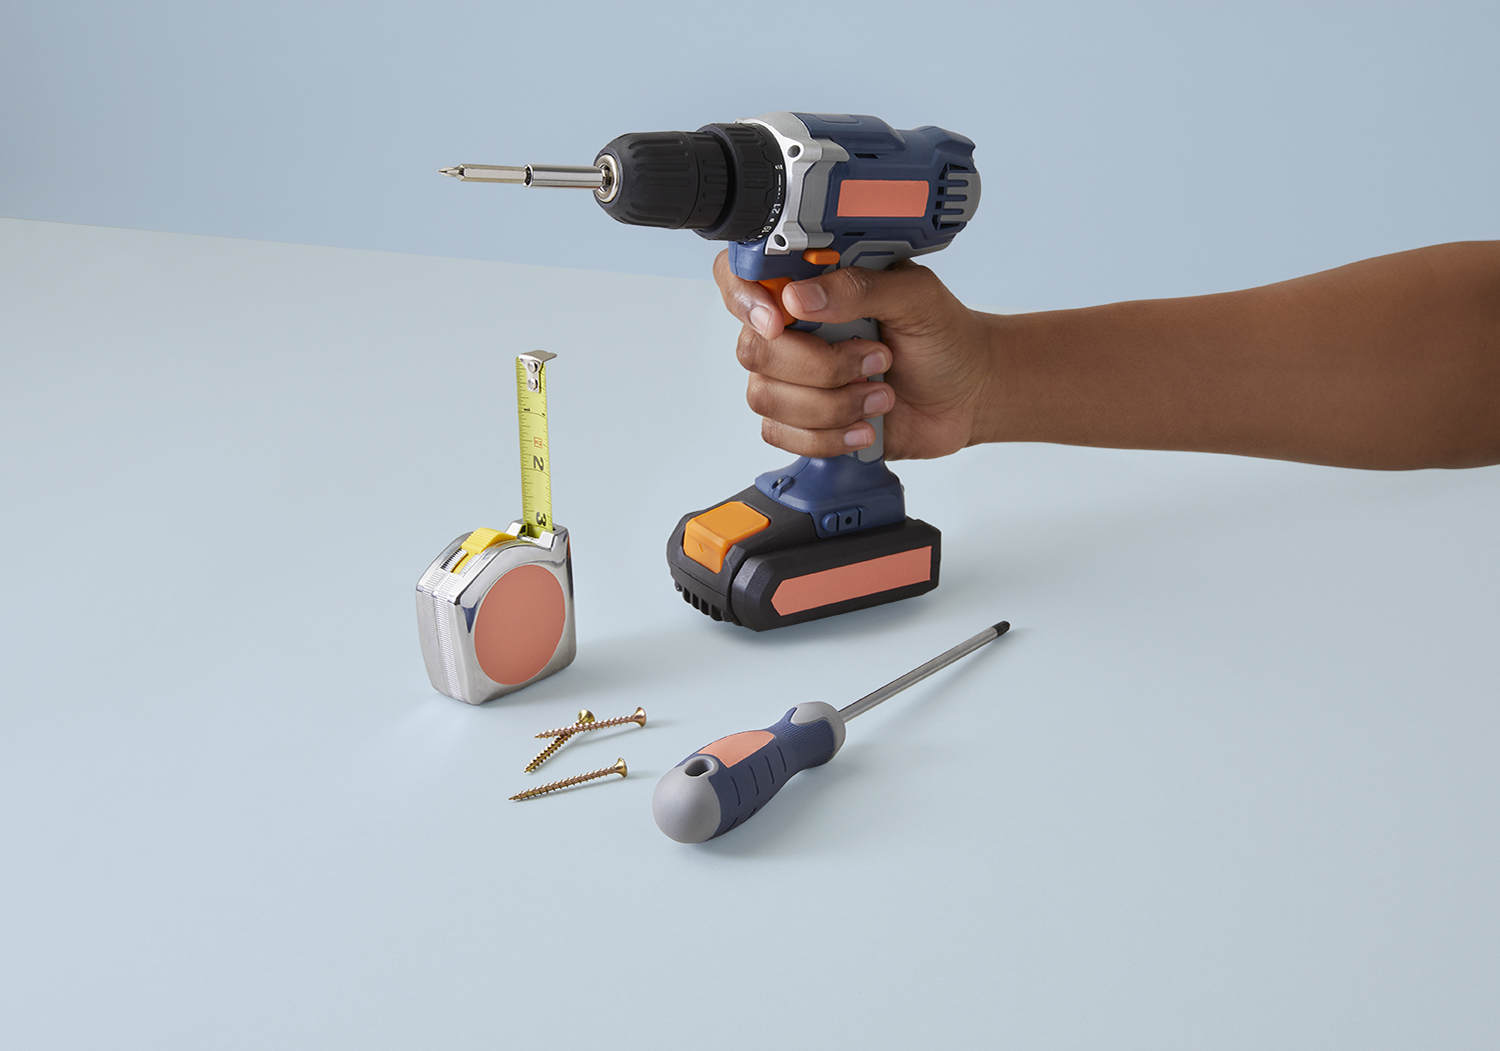 Instacart_Product_Household_DIY_Construction_WIth_Hand_0304_blue